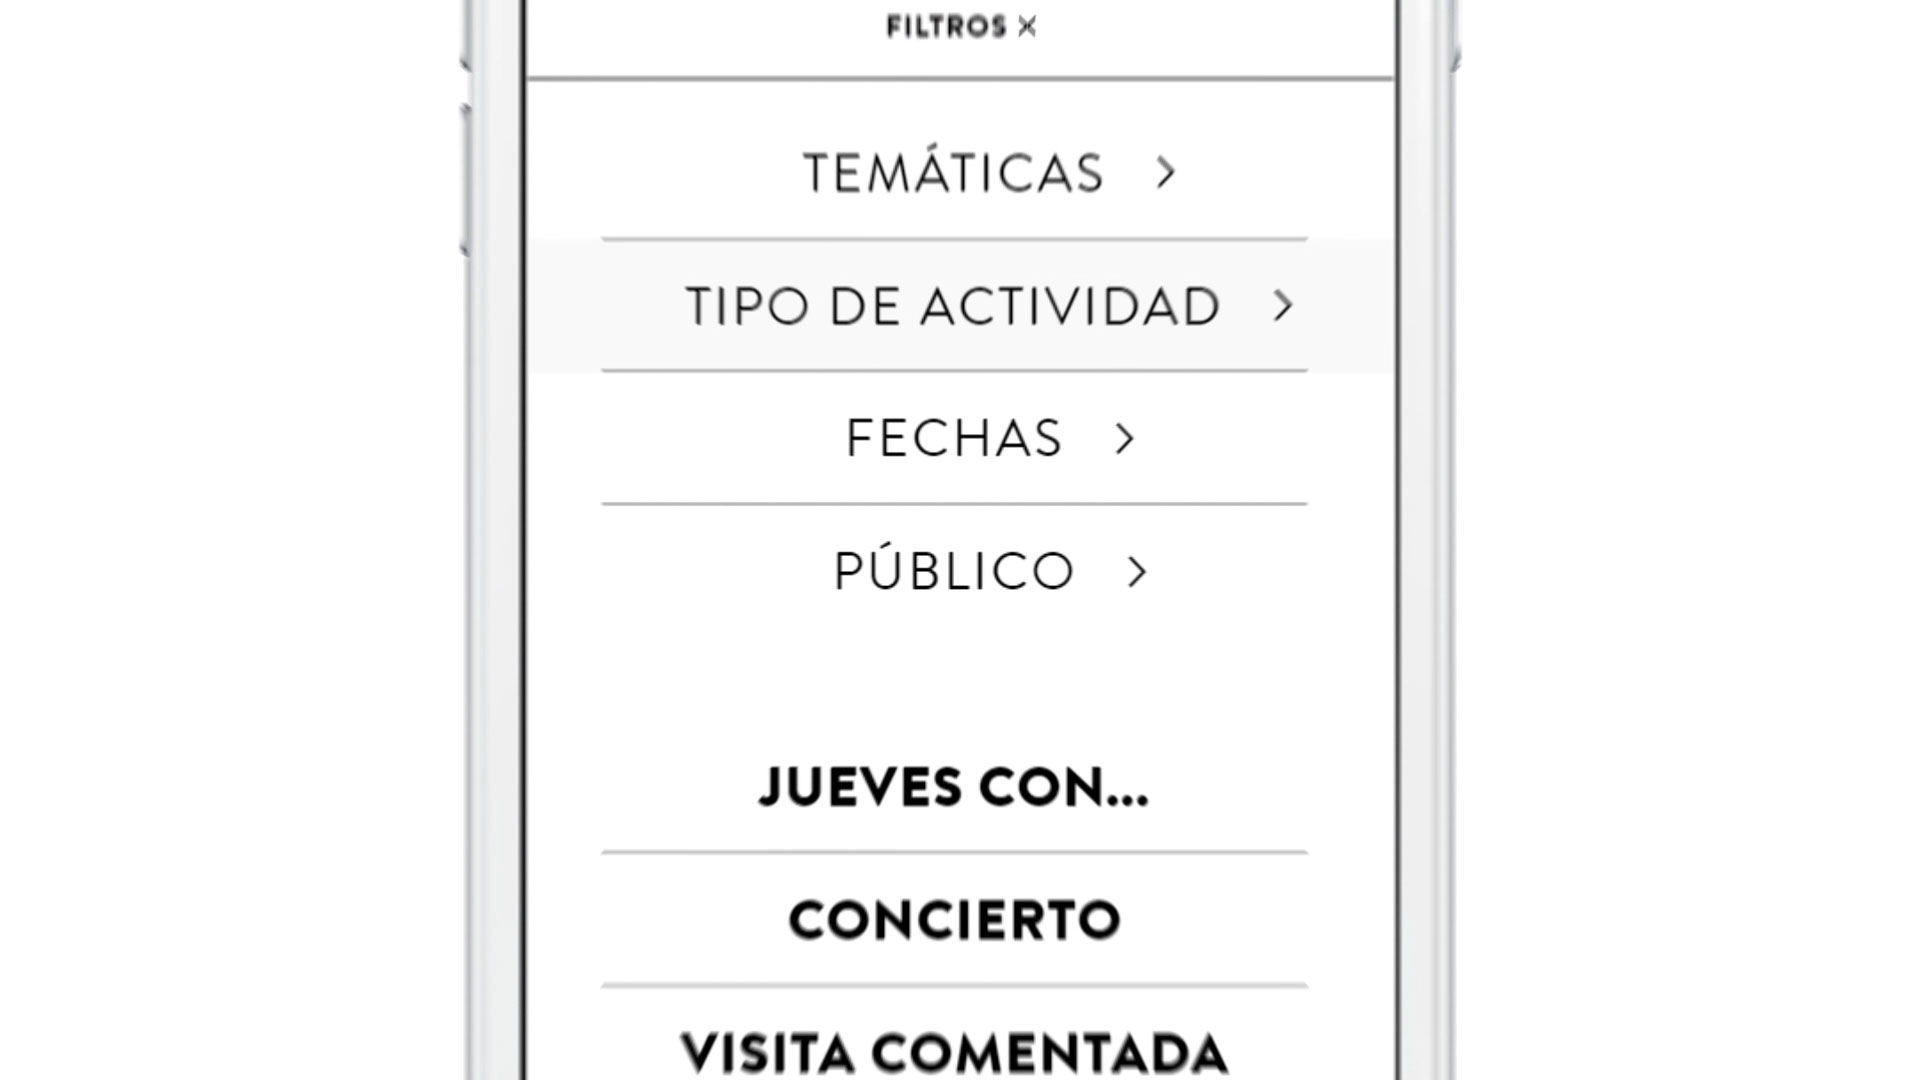 CaixaForum's mobile website search filters